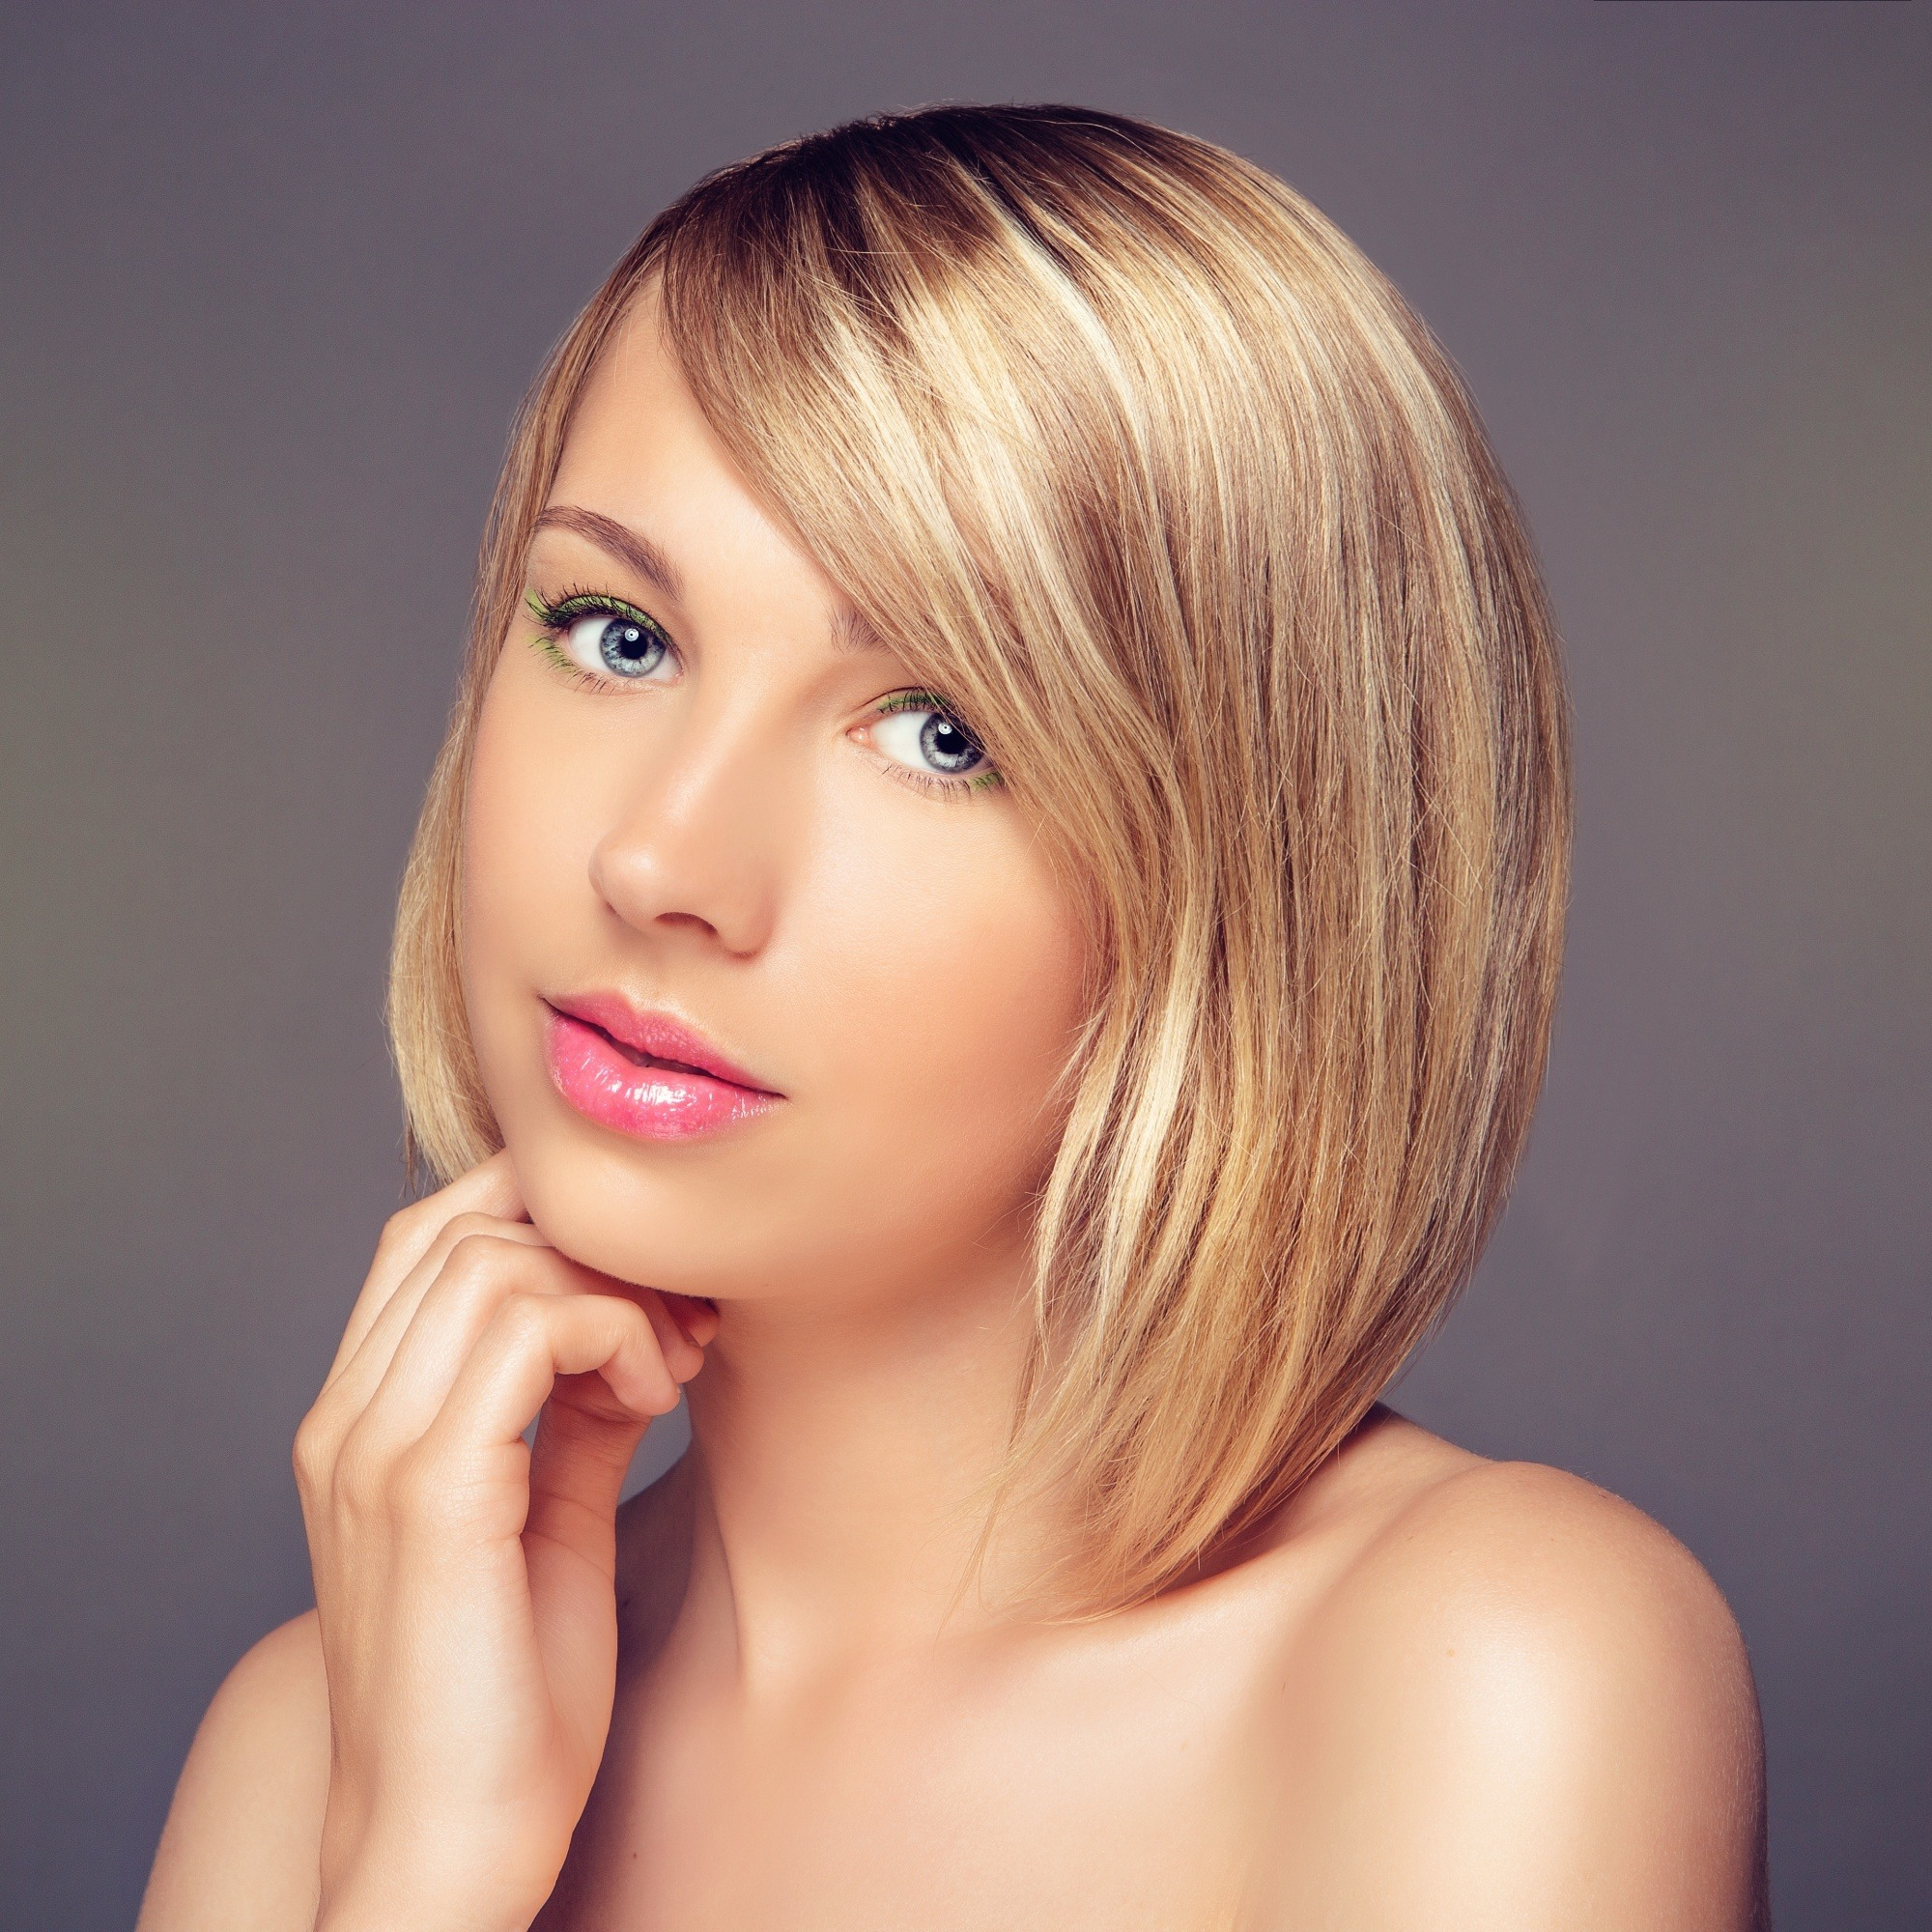 Long bob with bangs: Woman with blonde lob with side bangs against a gray backdrop